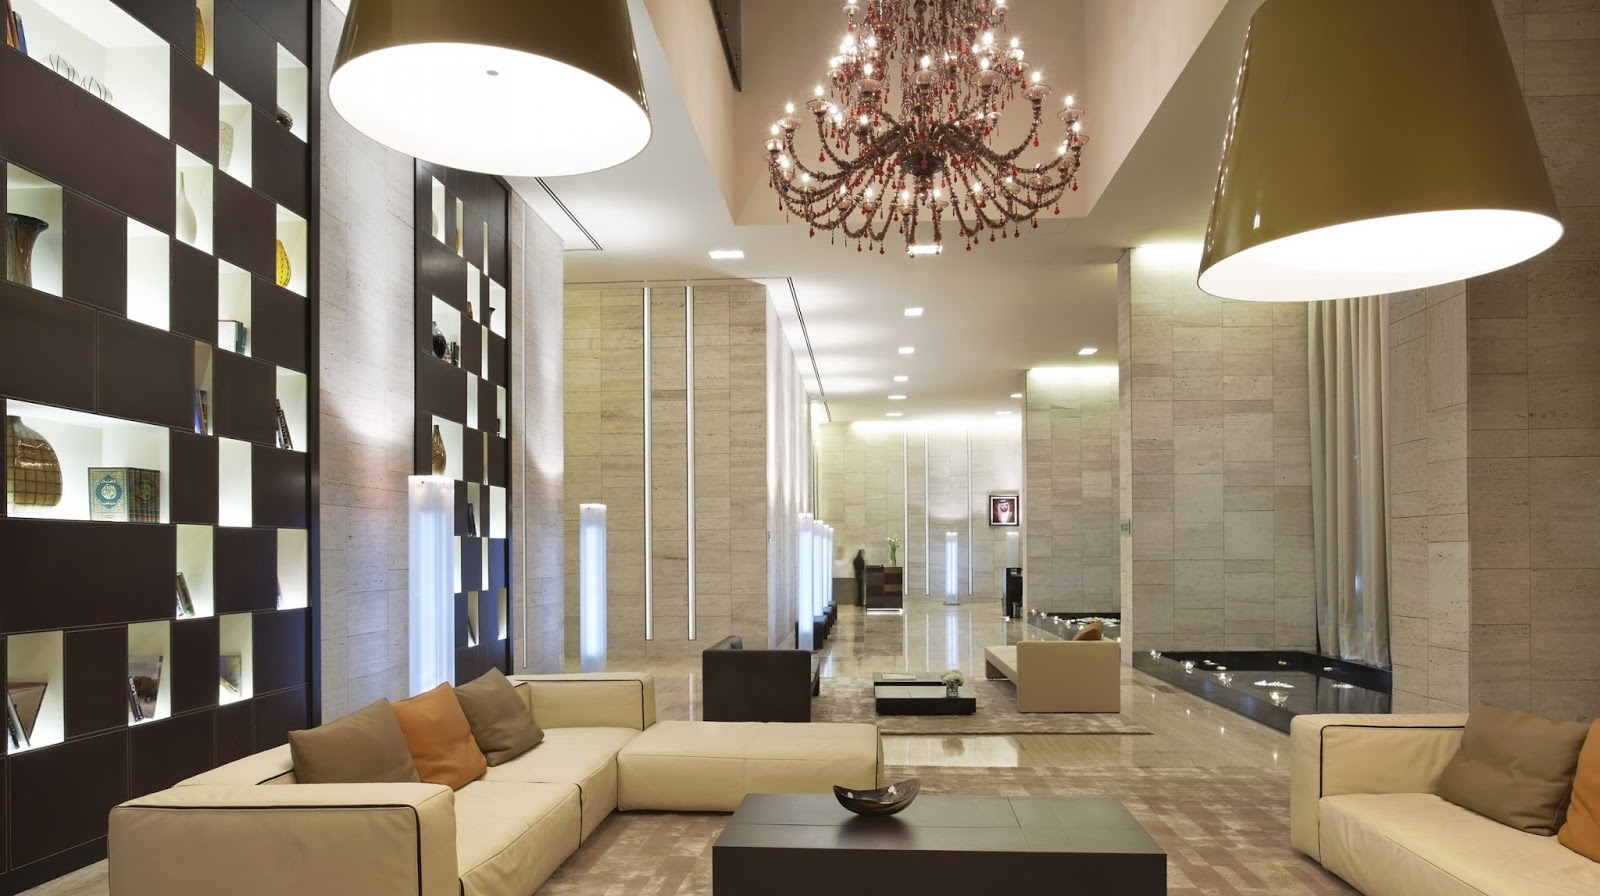 Best interior design companies and interior designers in dubai for Interior desings